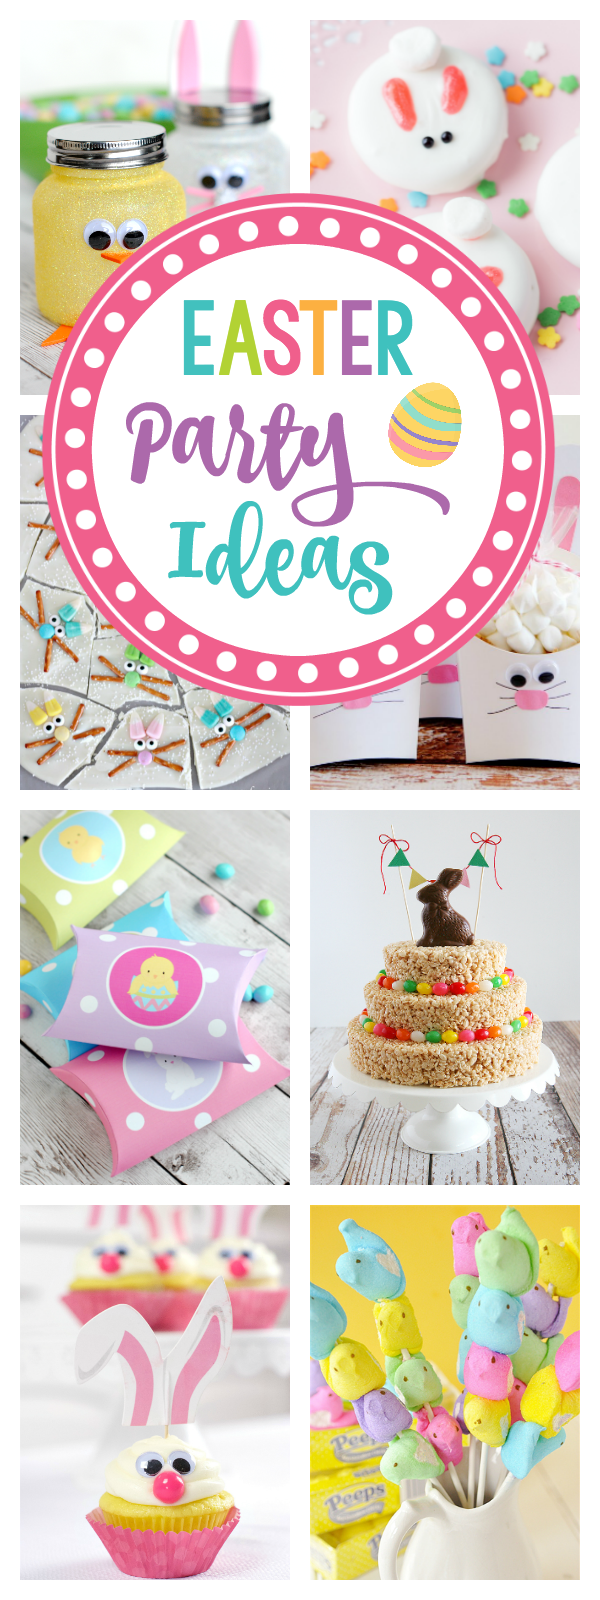 25 Fun Easter Party Ideas For Kids Fun Squared